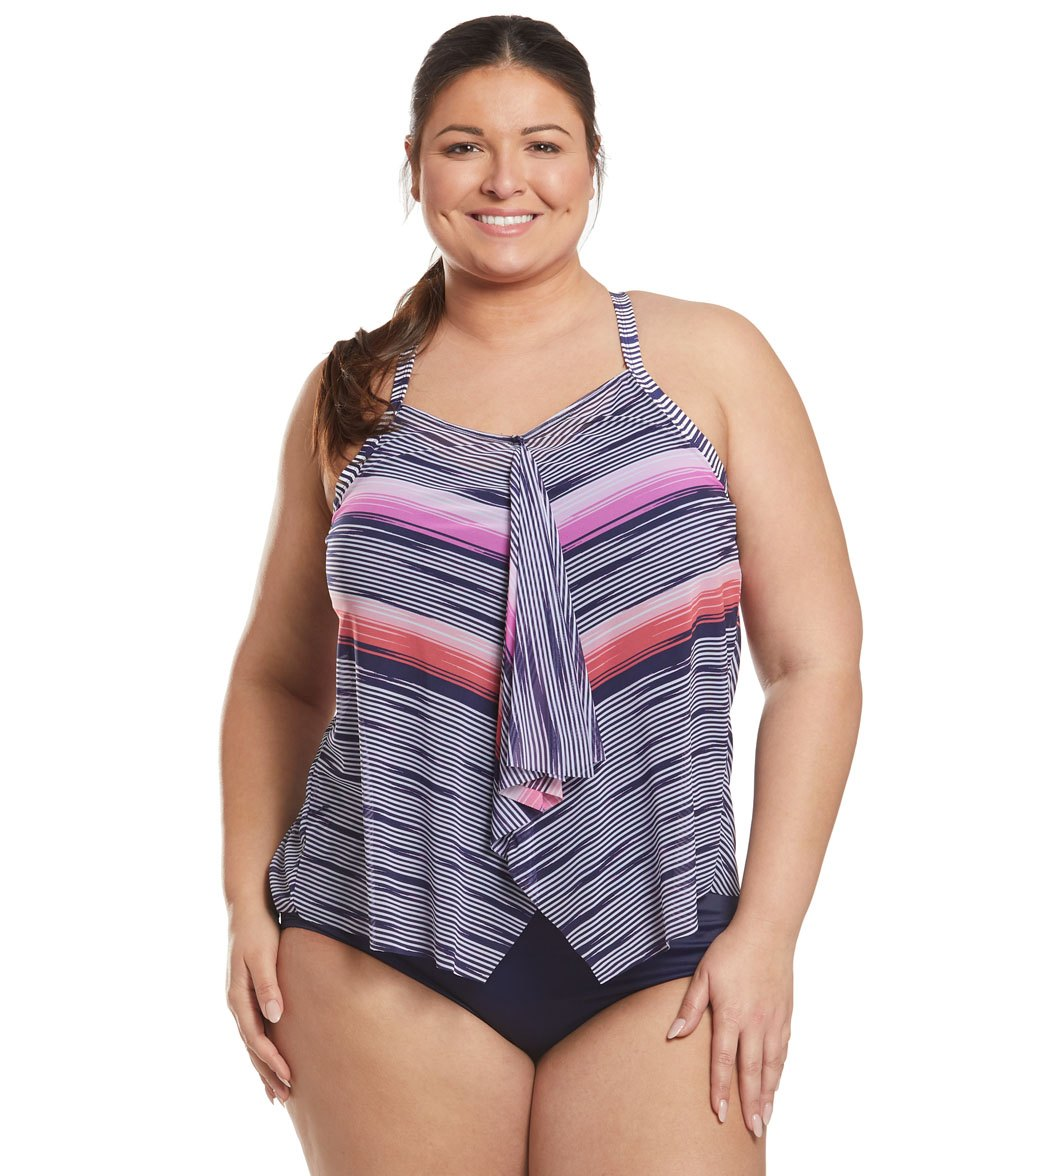 c8c280663b484 Beach House Plus Size Set Sail Kerry Tankini Top at SwimOutlet.com - Free  Shipping